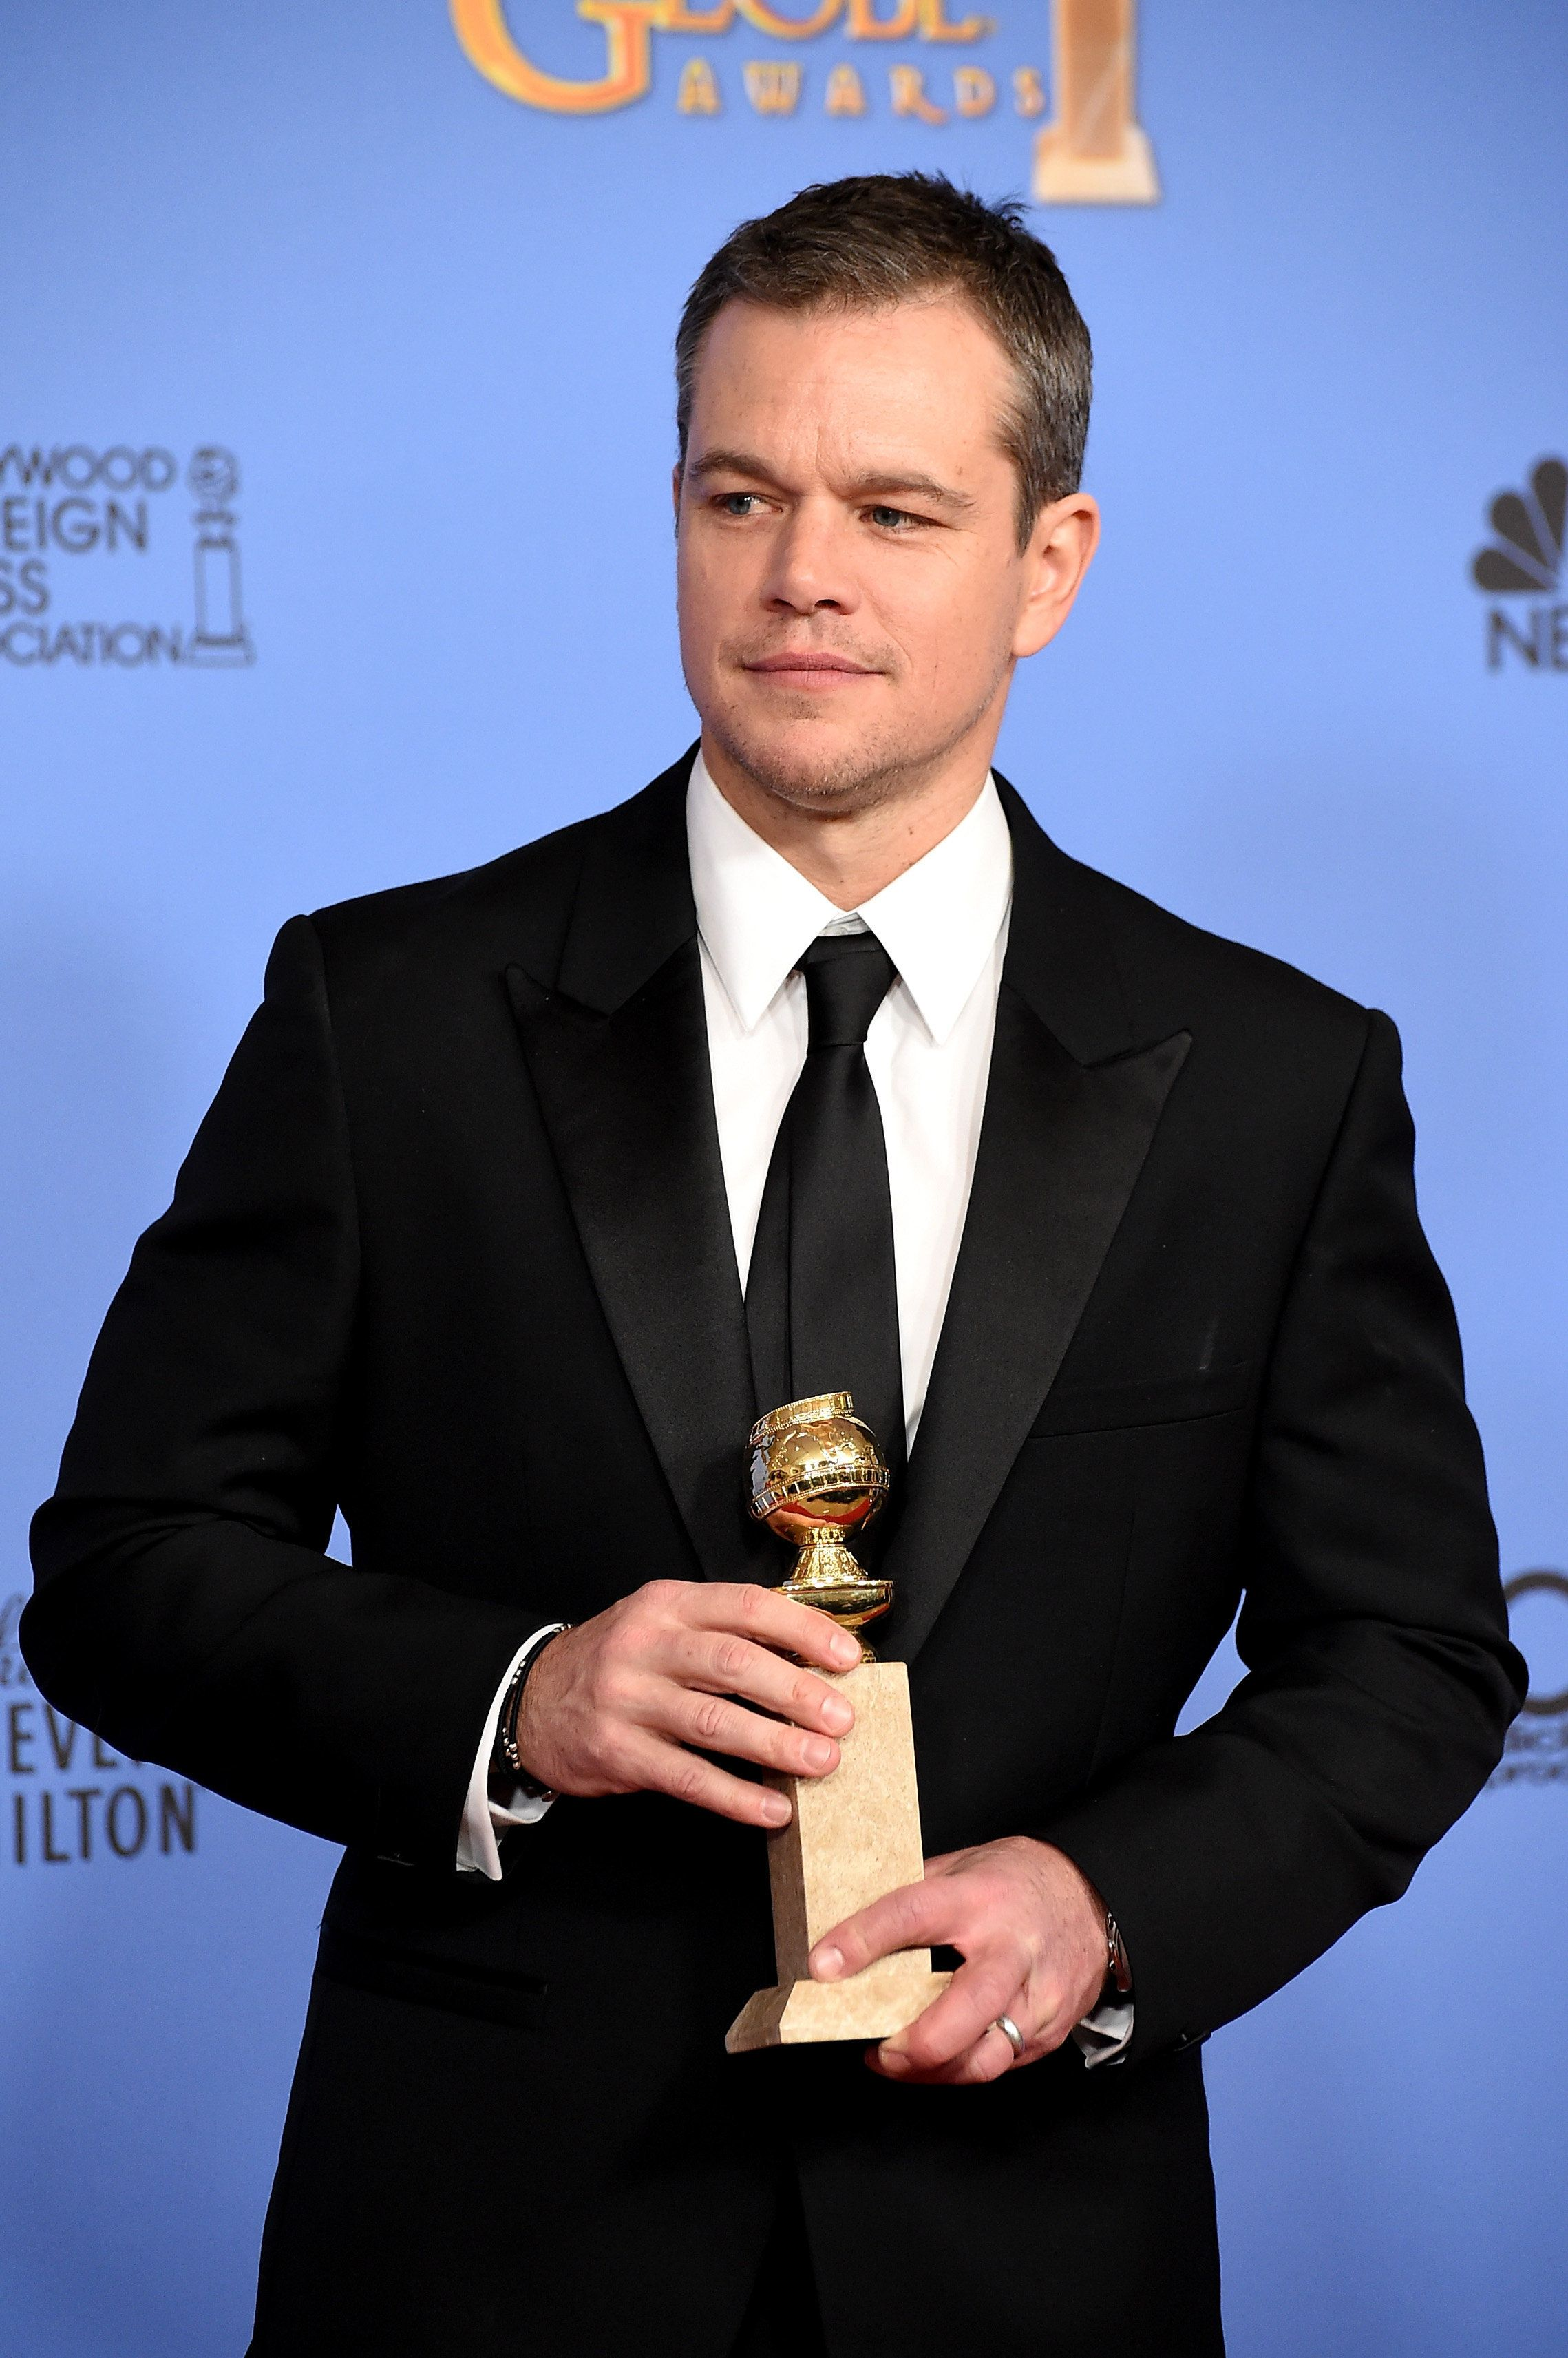 BEVERLY HILLS, CA - JANUARY 10:  Actor Matt Damon, winner of the award for Best Performance by an Actor in a Motion Picture - Musical or Comedy for 'The Martian,' poses in the press room during the 73rd Annual Golden Globe Awards held at the Beverly Hilton Hotel on January 10, 2016 in Beverly Hills, California.  (Photo by Steve Granitz/WireImage)